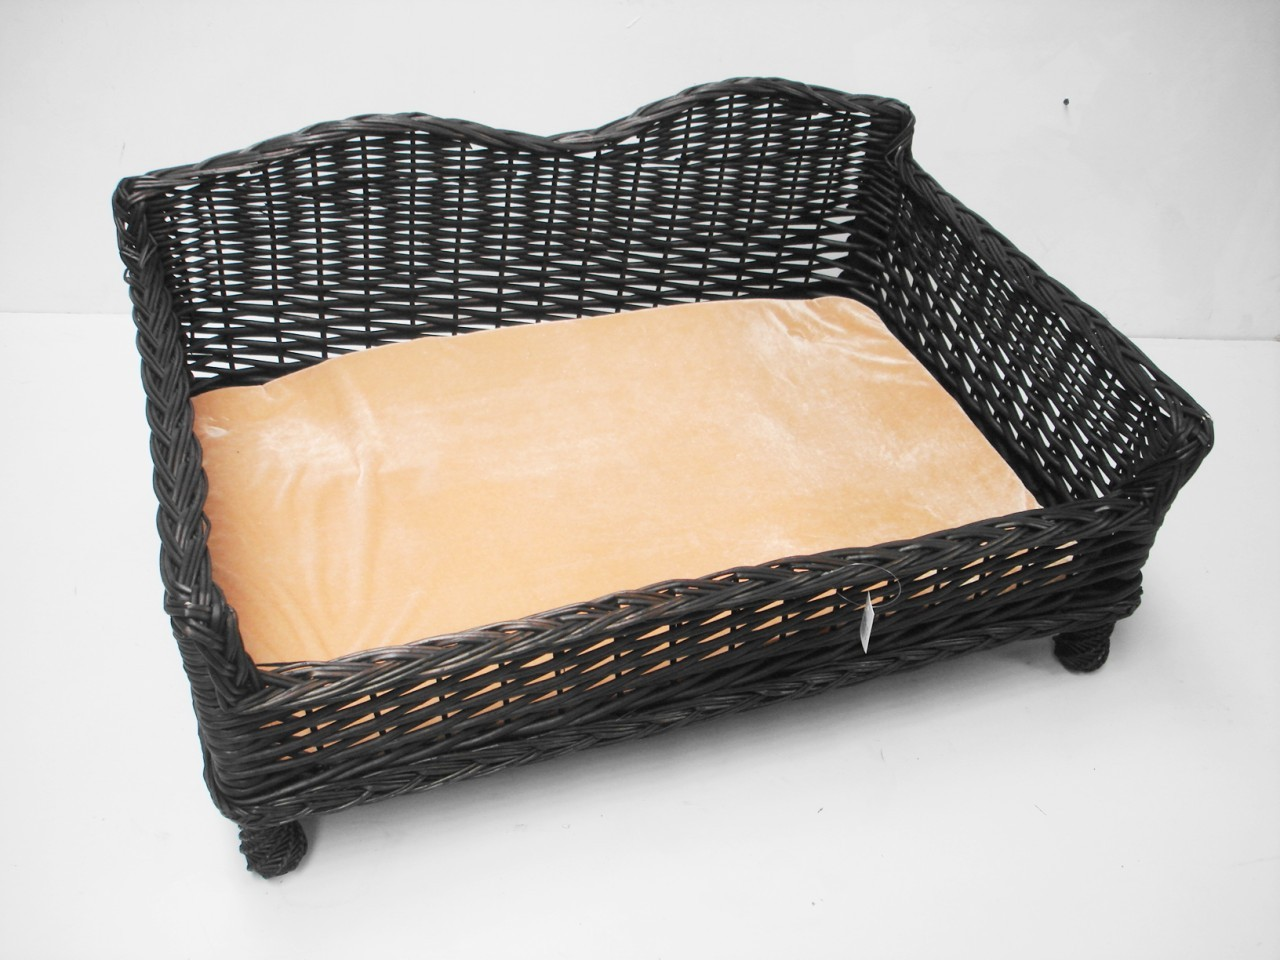 Giant Huge Big Wicker Willow Dog Pet Bed Basket Sofa Couch